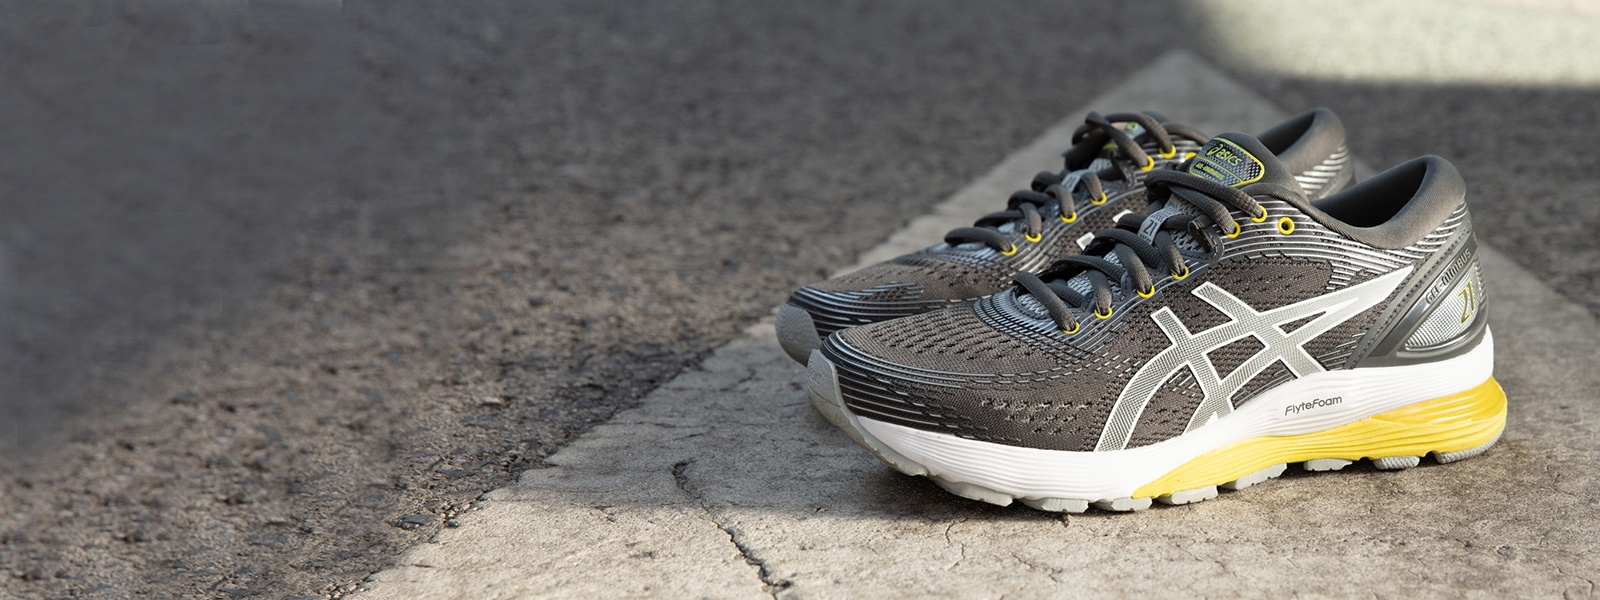 Grey and yellow running shoes sitting on a street